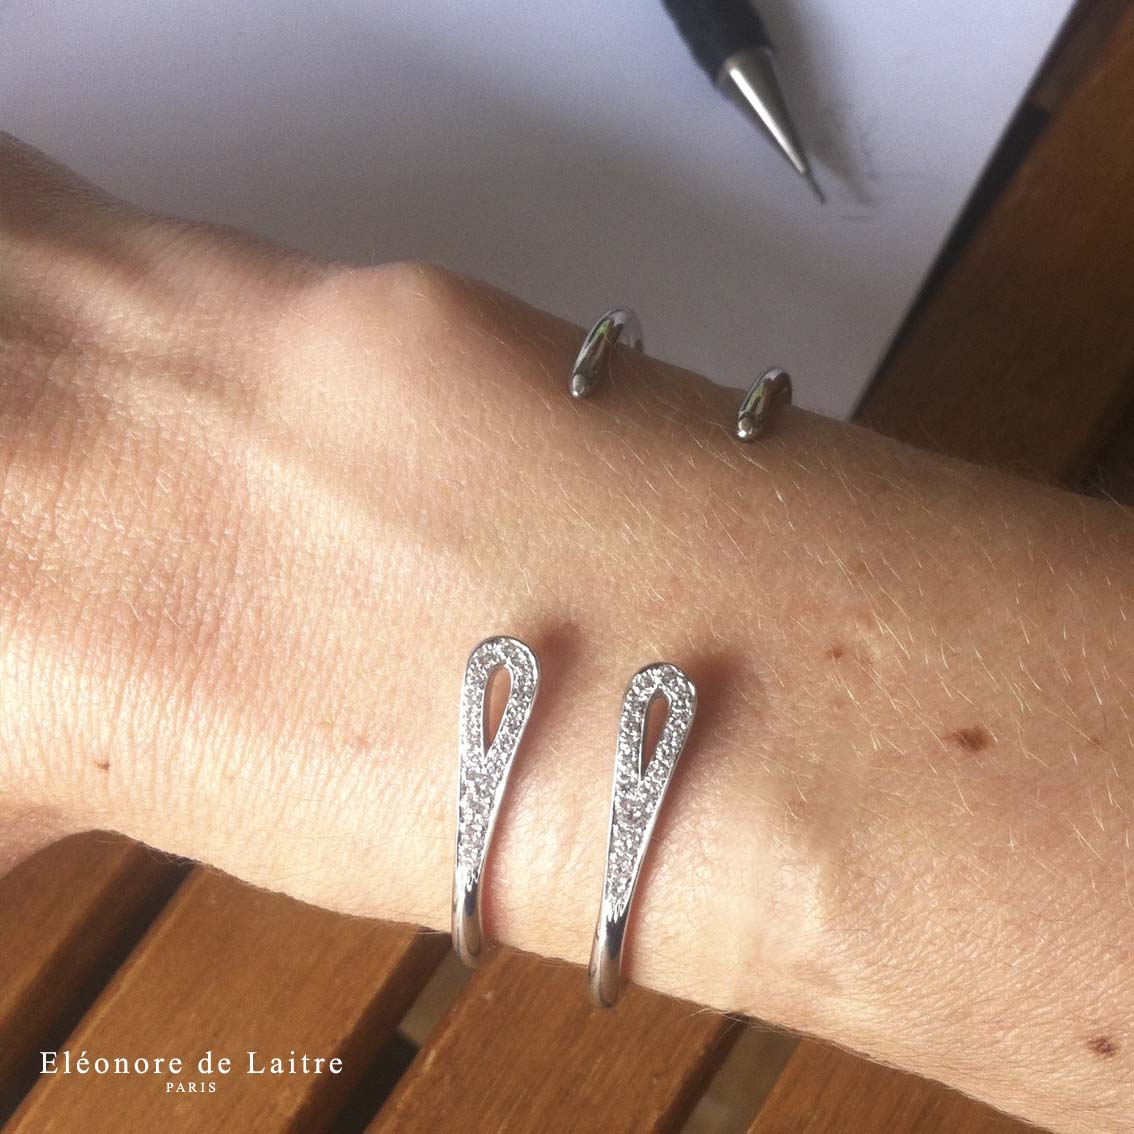 Eléonore de Laitre - Collection Couture - Bracelet Double Aiguille - Diamants, or blanc